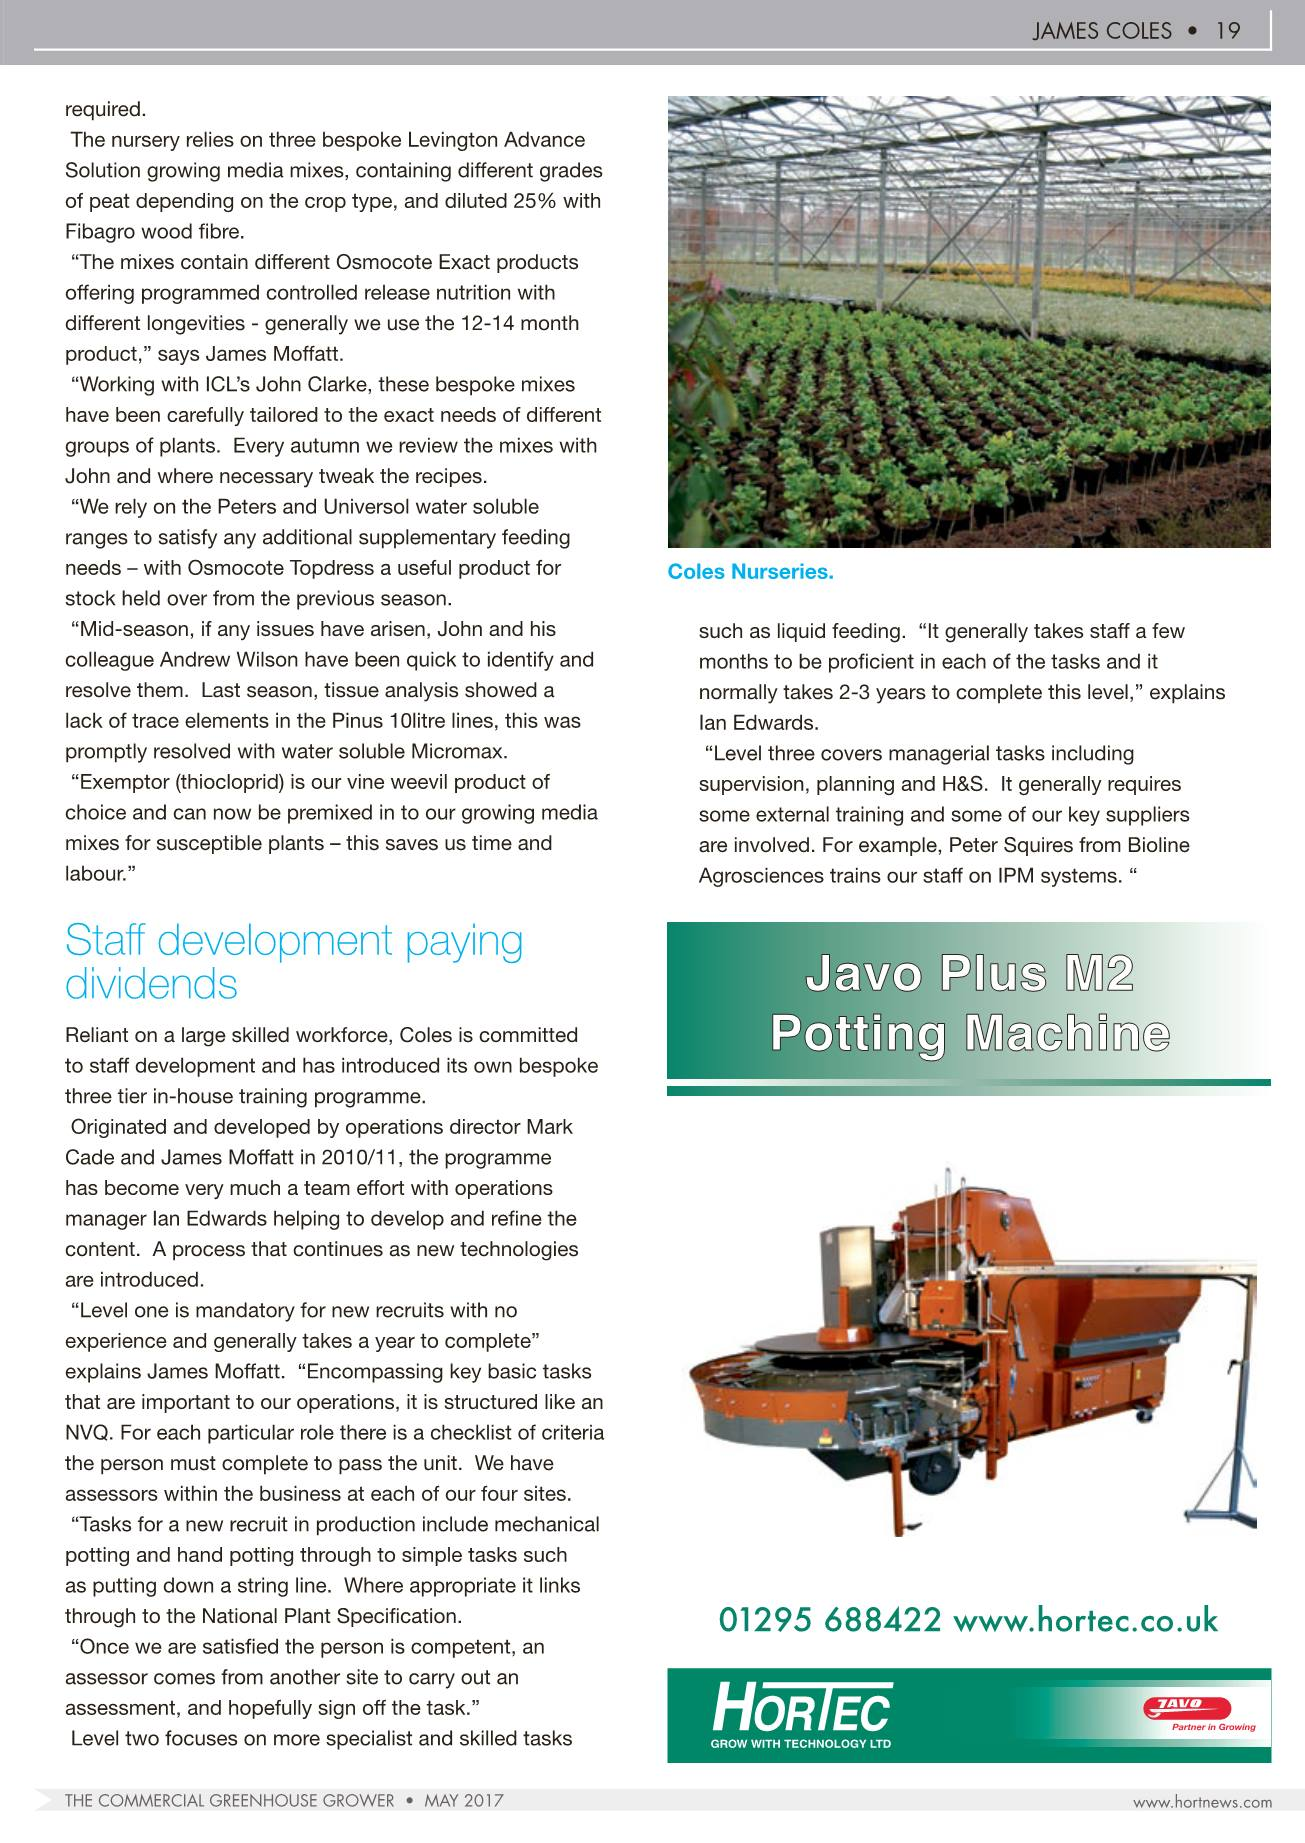 Index of /publications/greenhousegrower/may/2017/files/assets/mobile